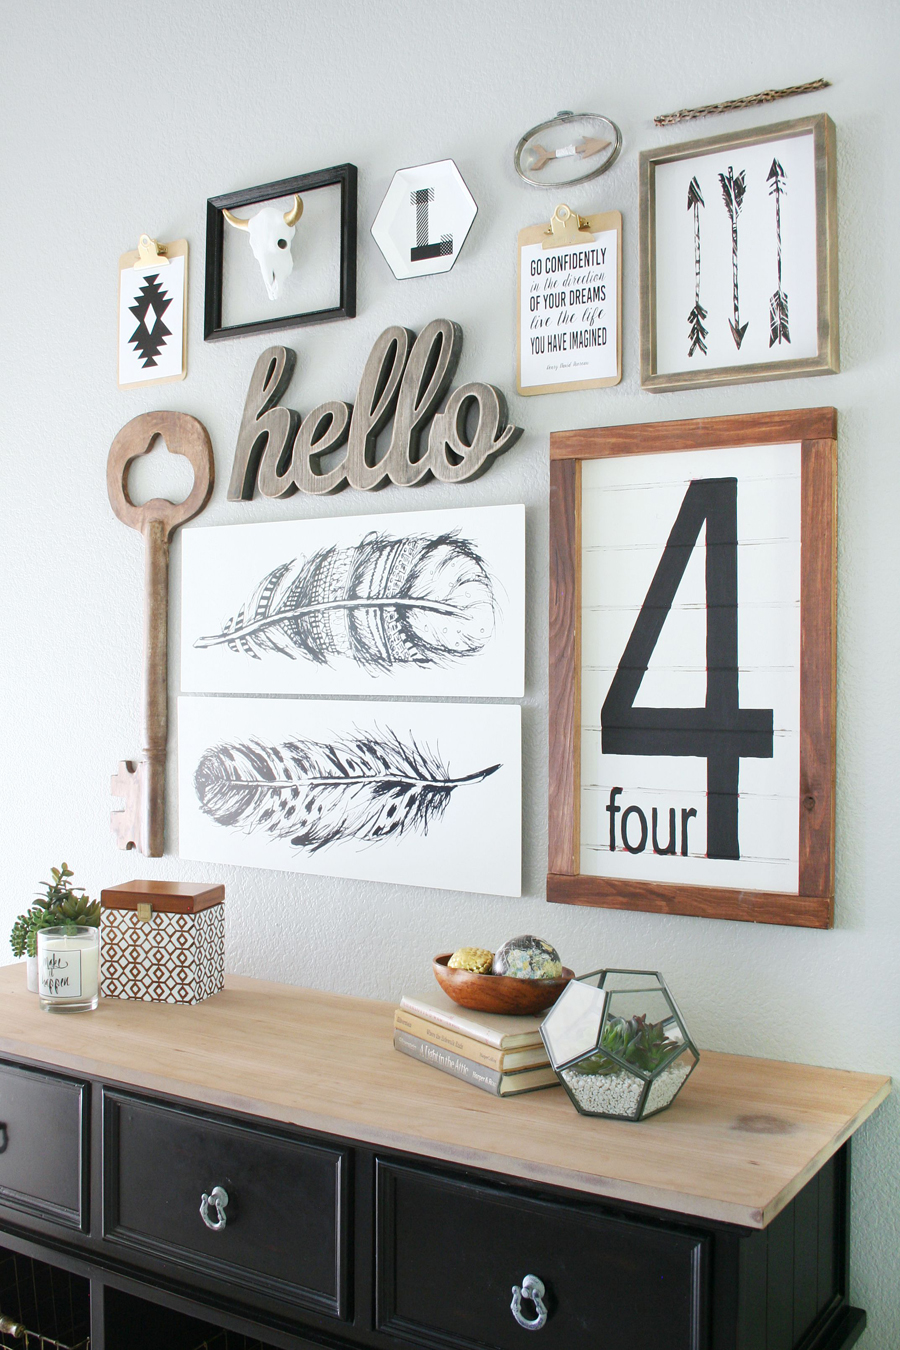 Great Create Meaningful Decor with Shutterfly